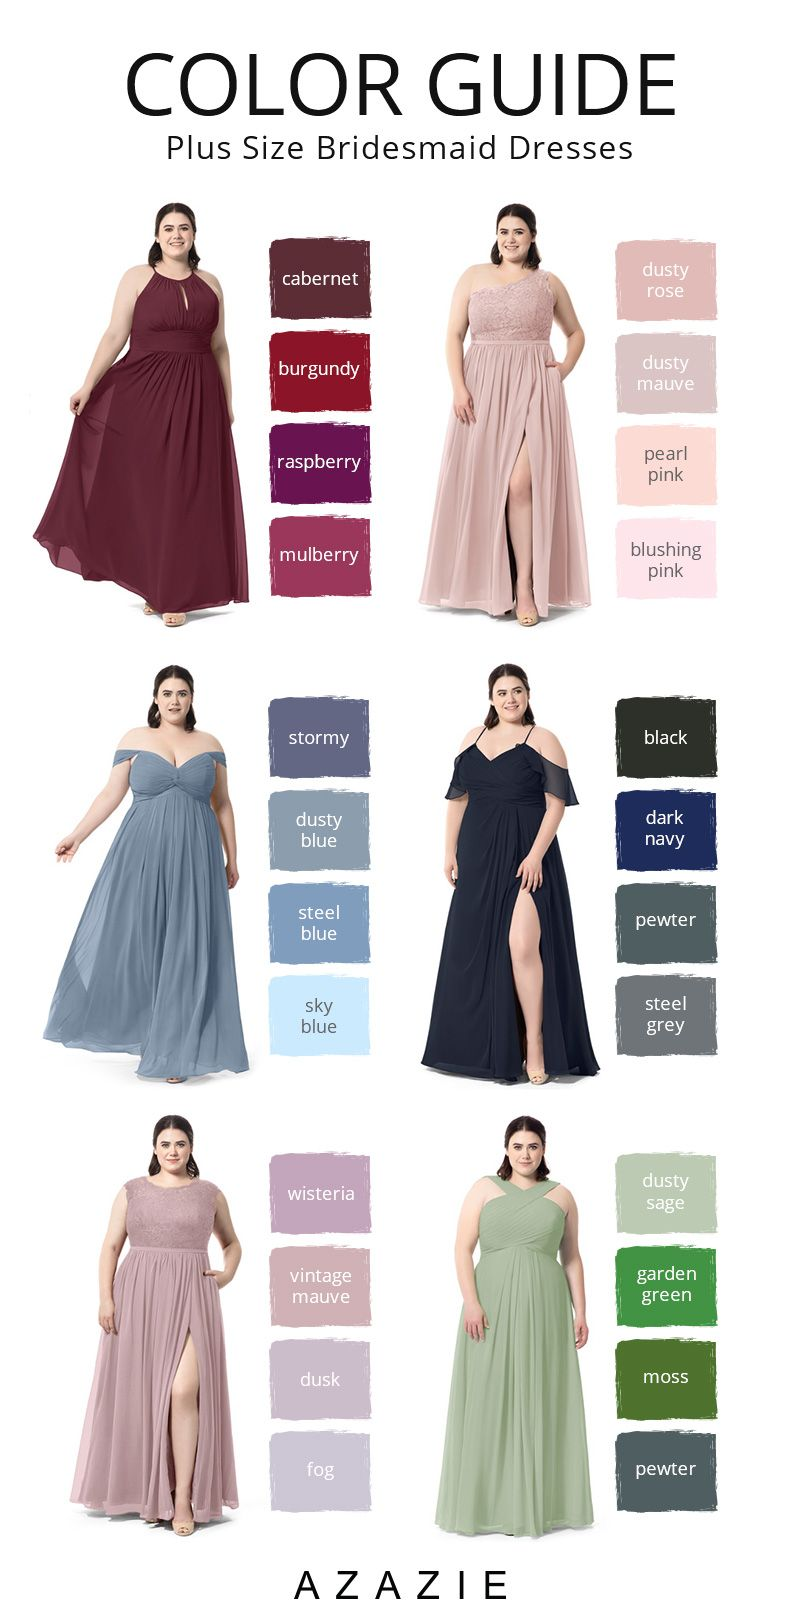 Plus Size Bridesmaid Dresses Color Guide Bridesmaid Dresses Plus Size Plus Size Bridesmaid Bridesmaid,New York City Hall Wedding Dresses